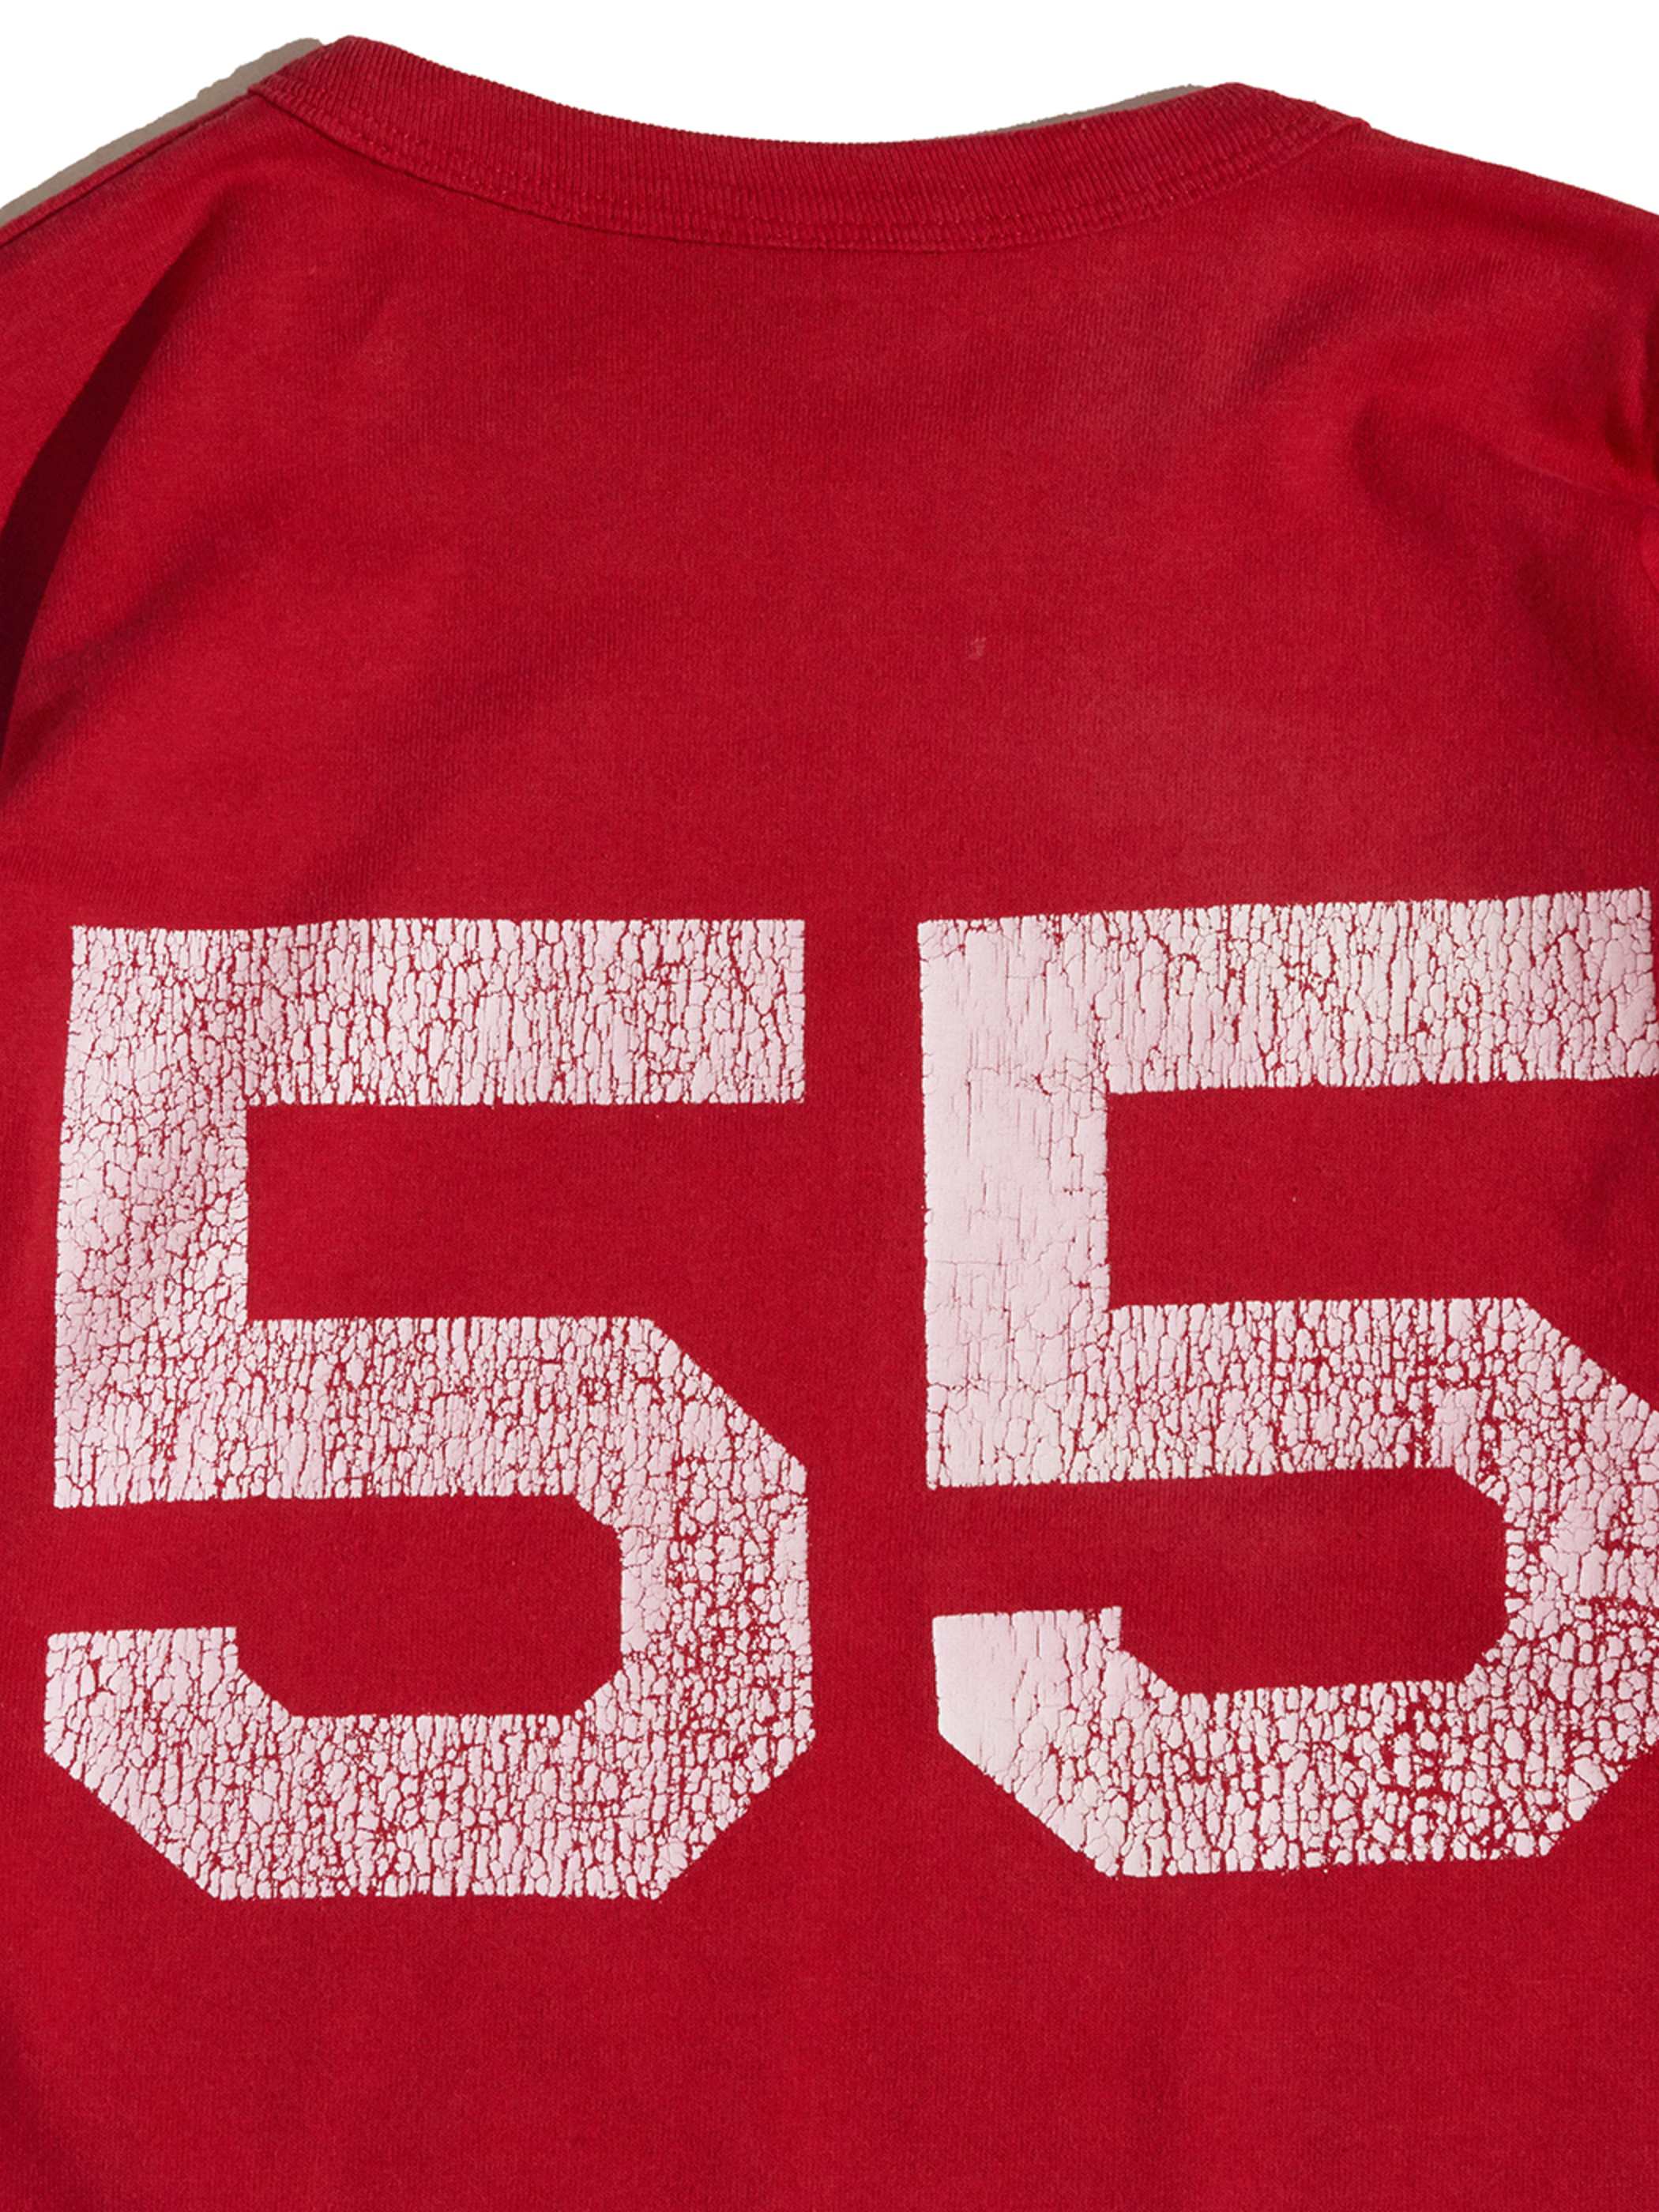 """1980s """"Champion"""" back print tee -RED-"""